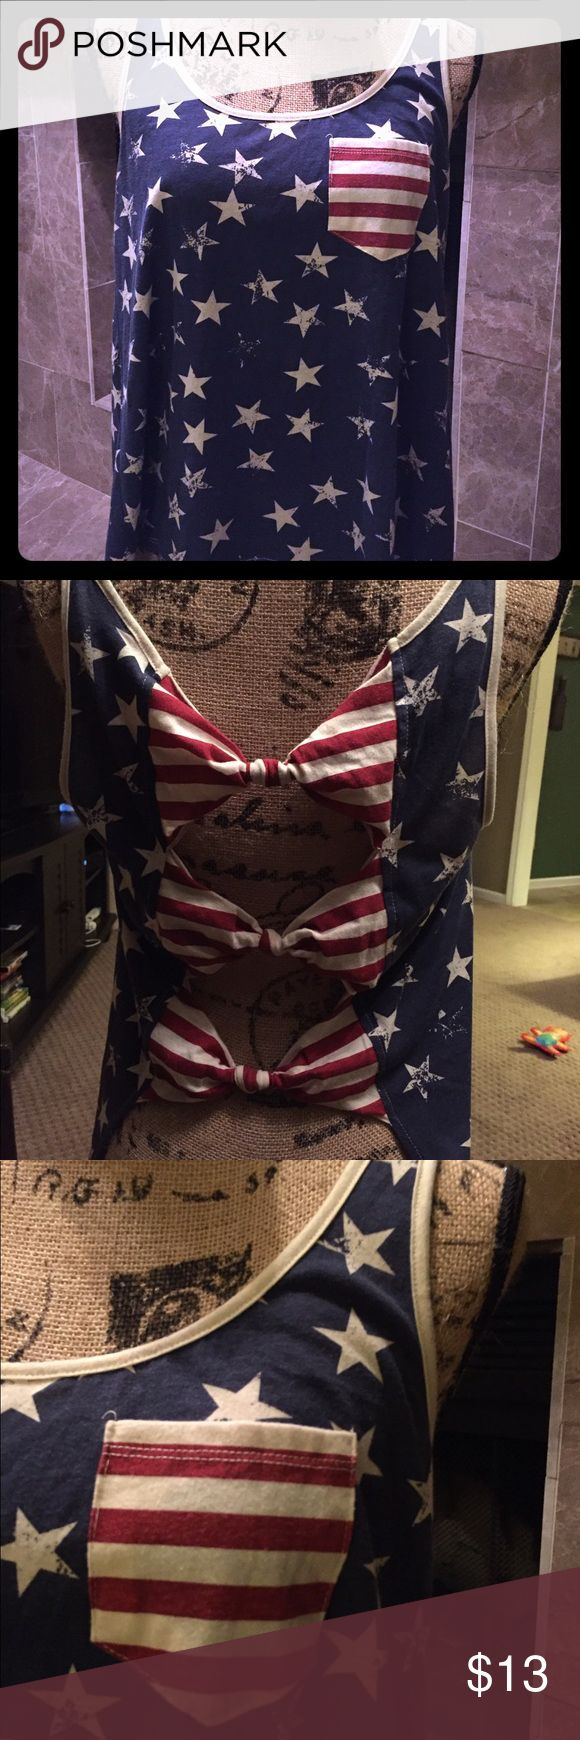 Patriotic Tank Top Patriotic tank top with an open back tied together by 3 knotted bows - As pictured - and a front pocket. Perfect for 4th of July or any time during the summer! Gently used, great condition with no signs of wear and tear. Rue 21 Tops Tank Tops